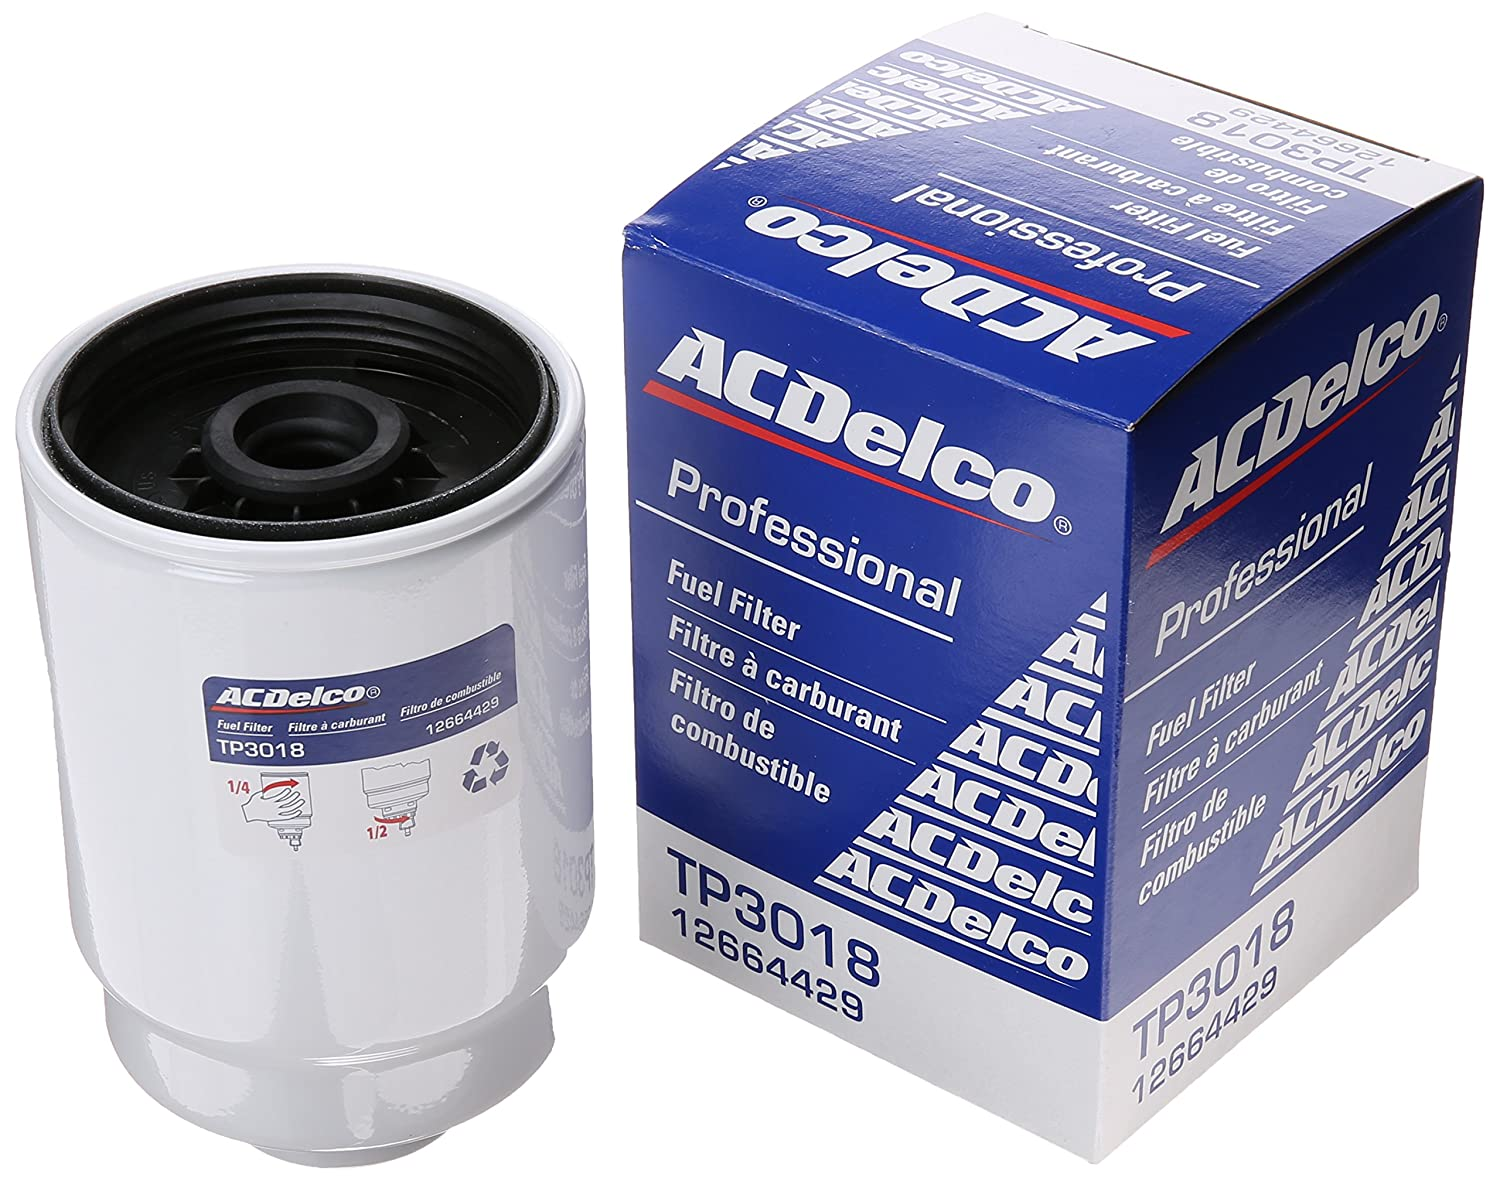 Amazon.com: ACDelco TP3018 Professional Fuel Filter with Seals: Automotive